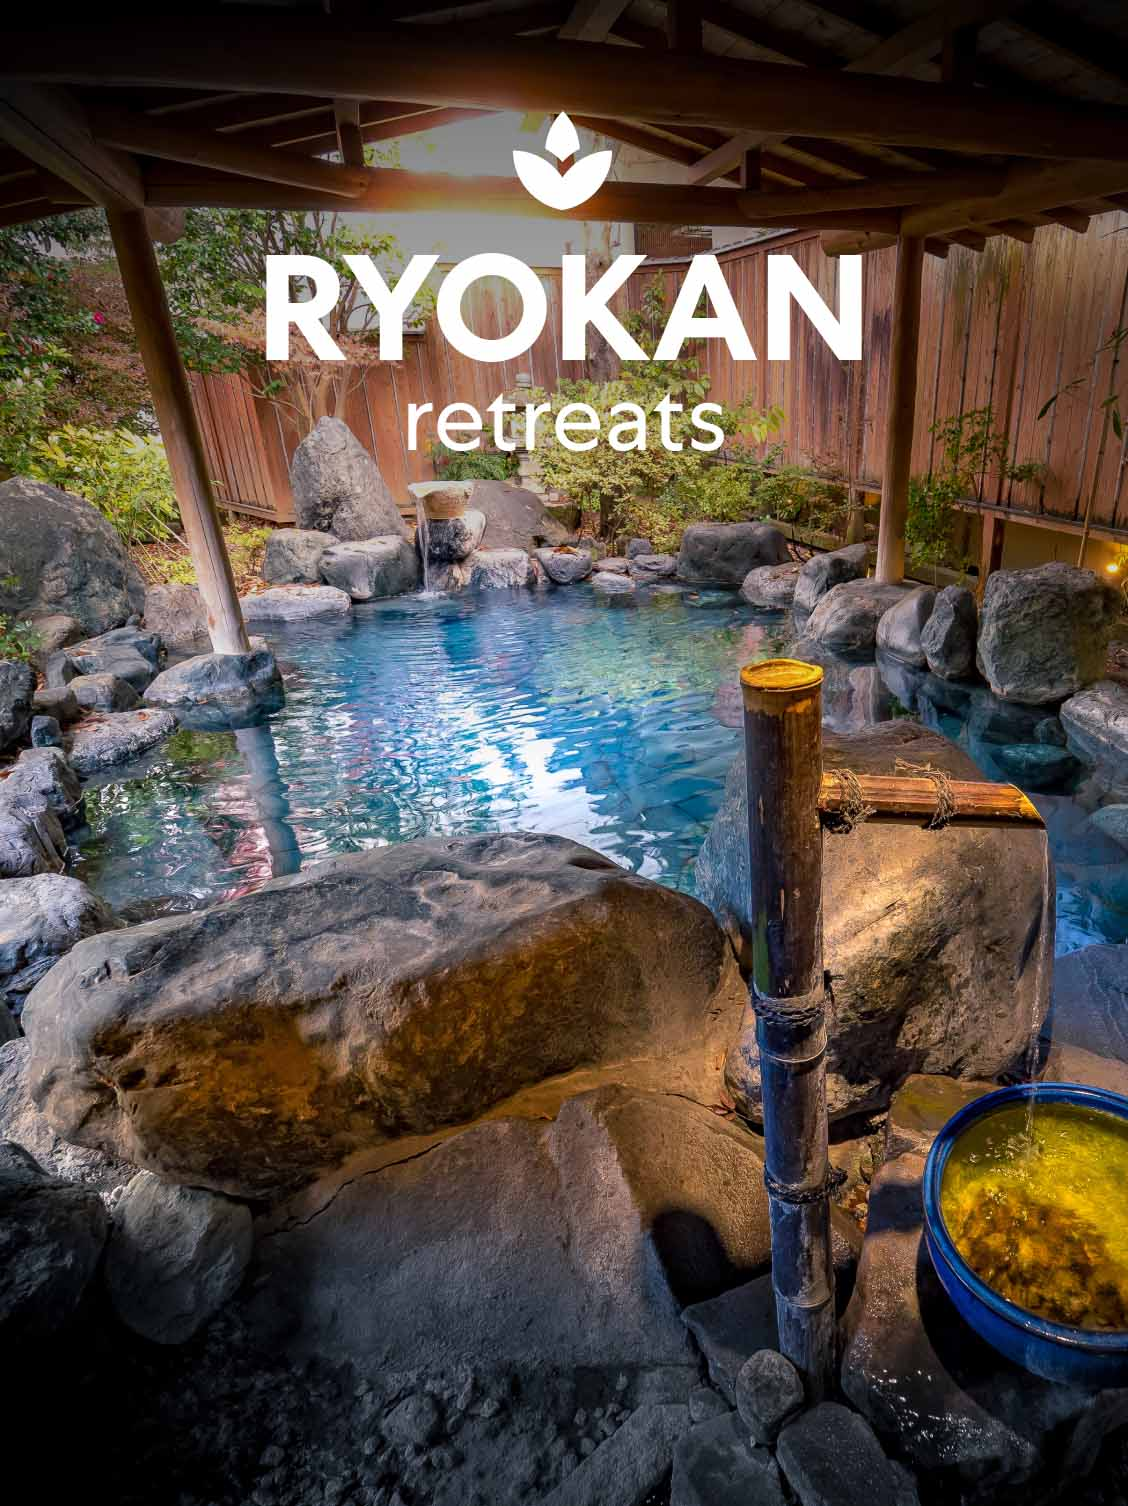 A traditonal Japanese Ryokan room with a pool with rocks. A superimposed title reads: Ryokan retreats.